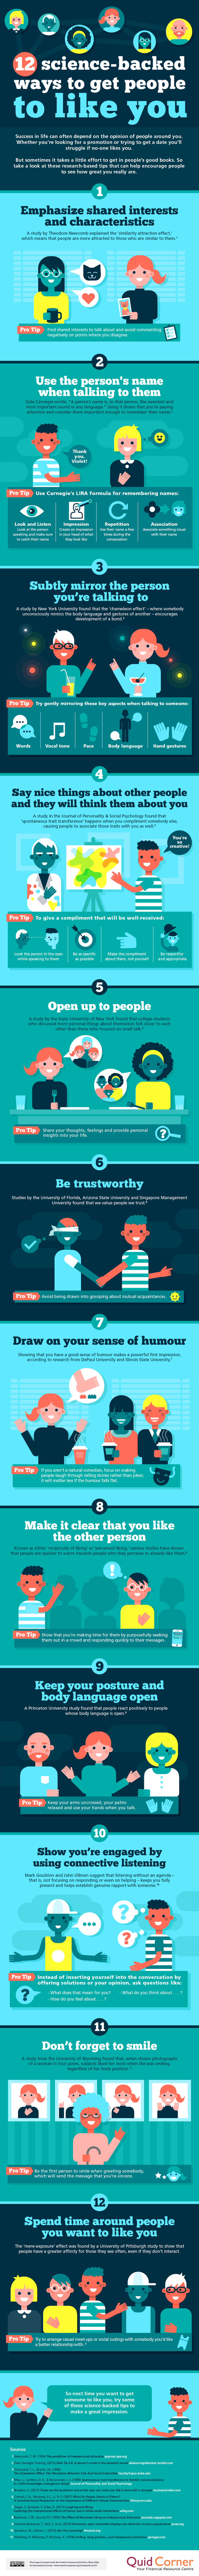 12-science-backed-ways-to-get-people-to-like-you